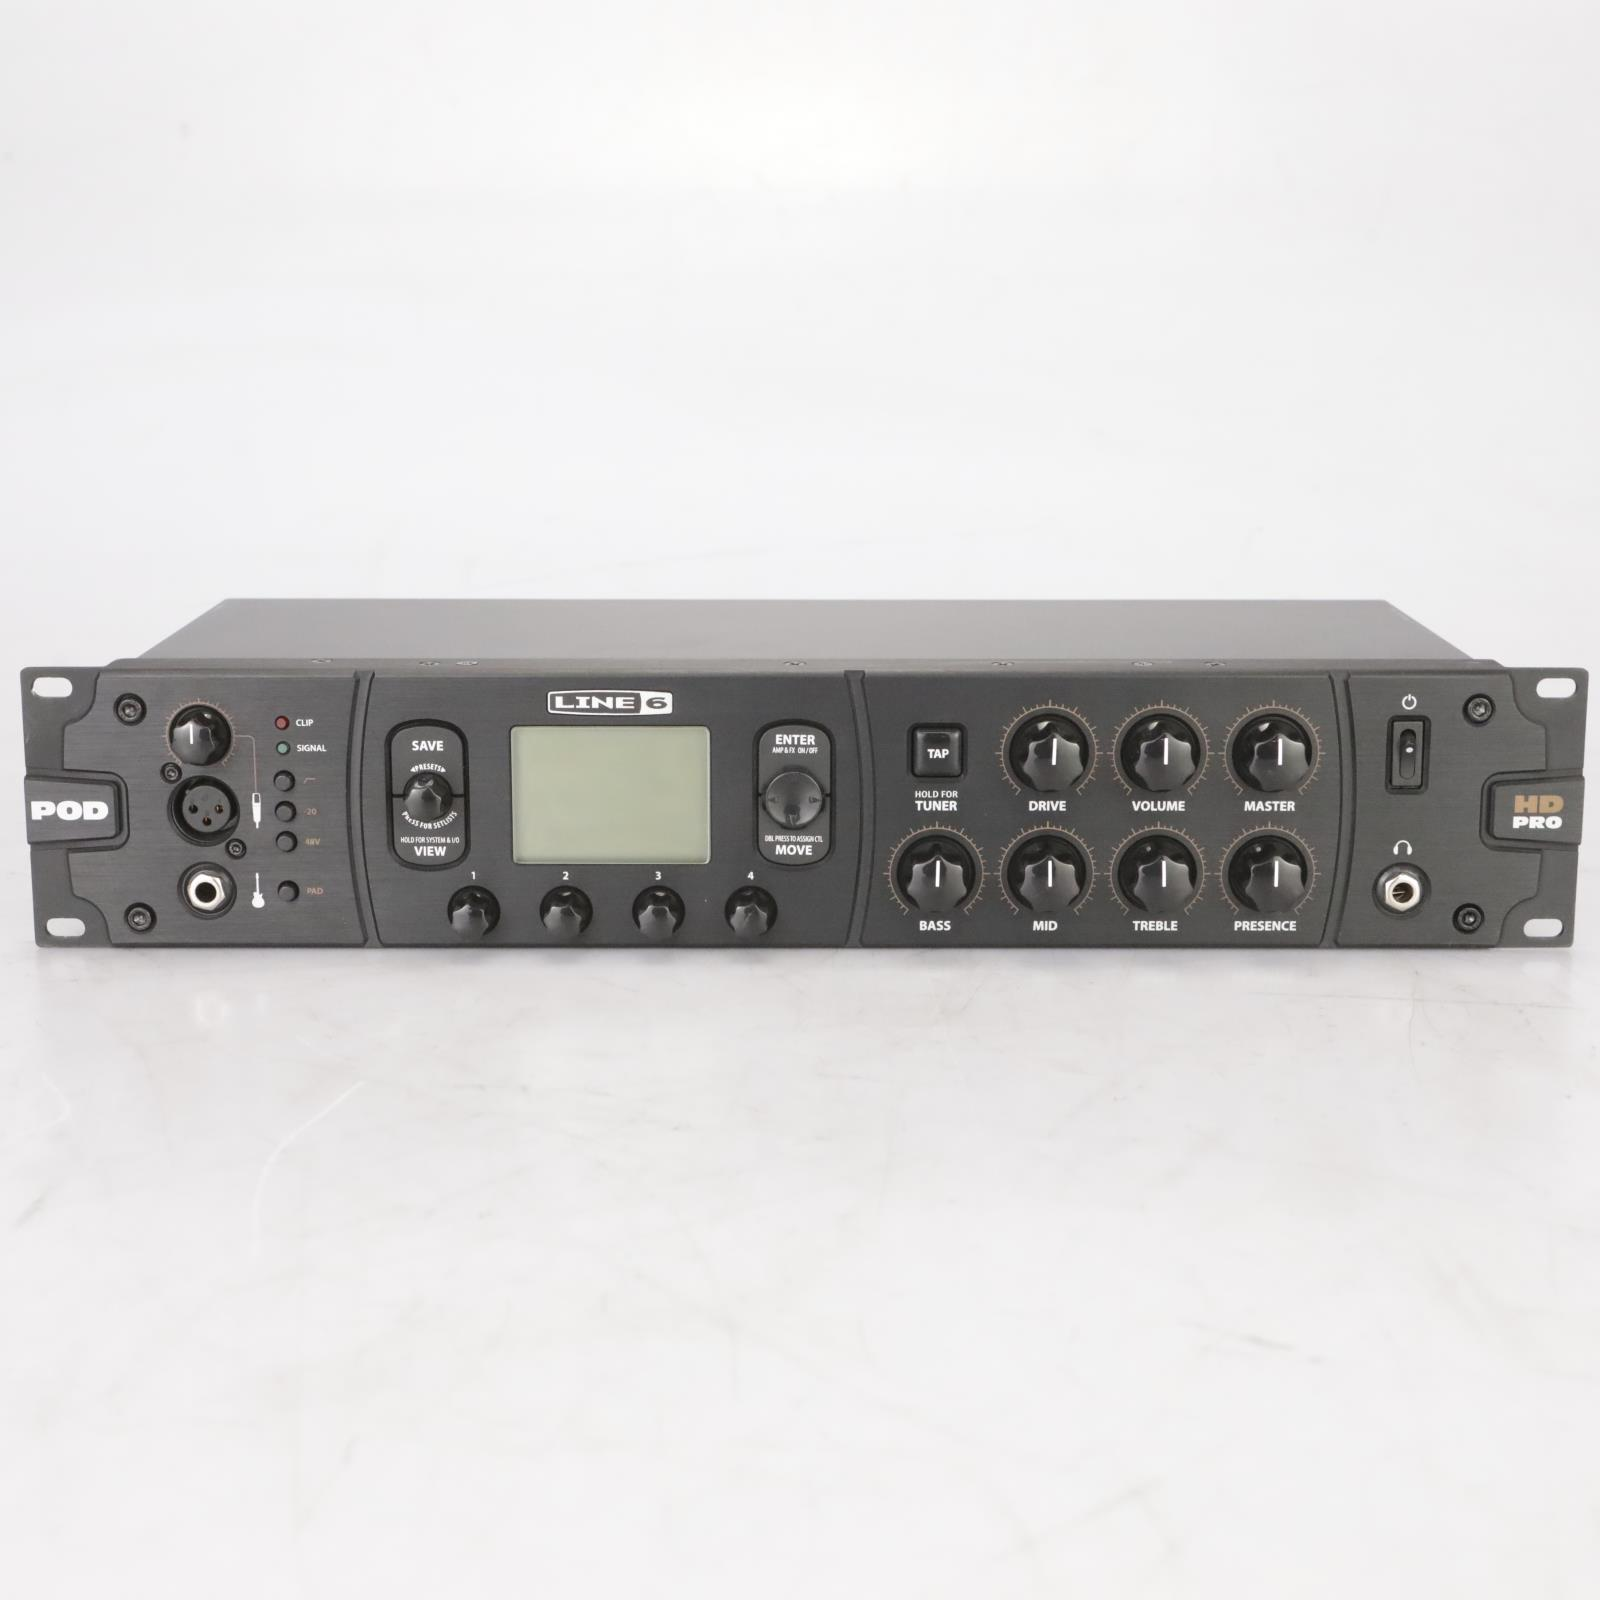 Line 6 POD HD Pro Amp Modeler Multi-Effects Processor Owned by Garbage #38600